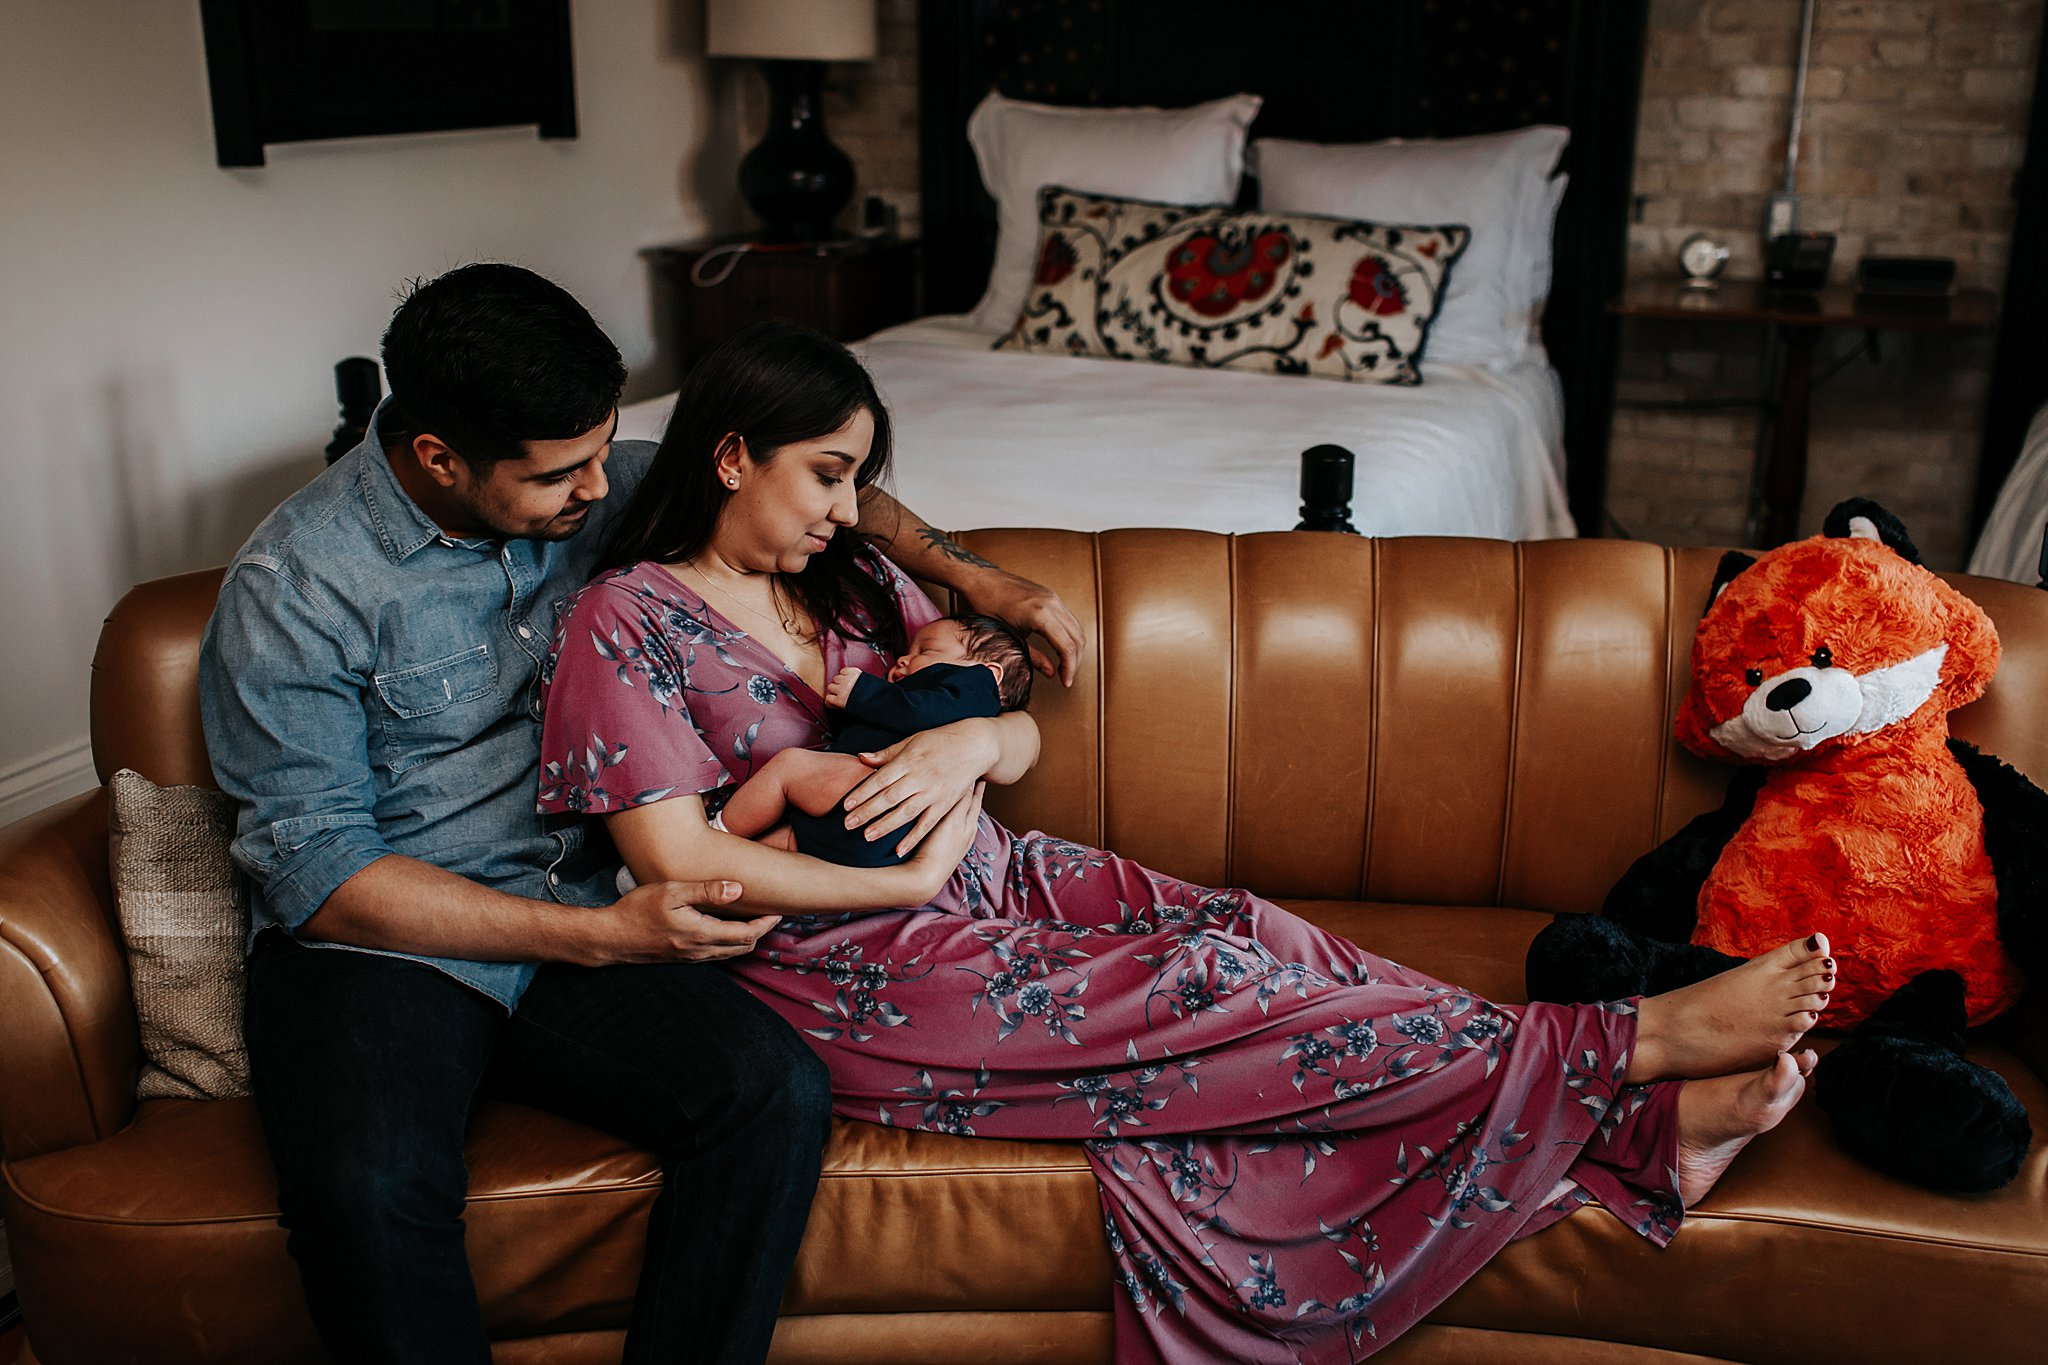 LandonX-San-Antonio-Birth-Photographer-101_WEB.jpg